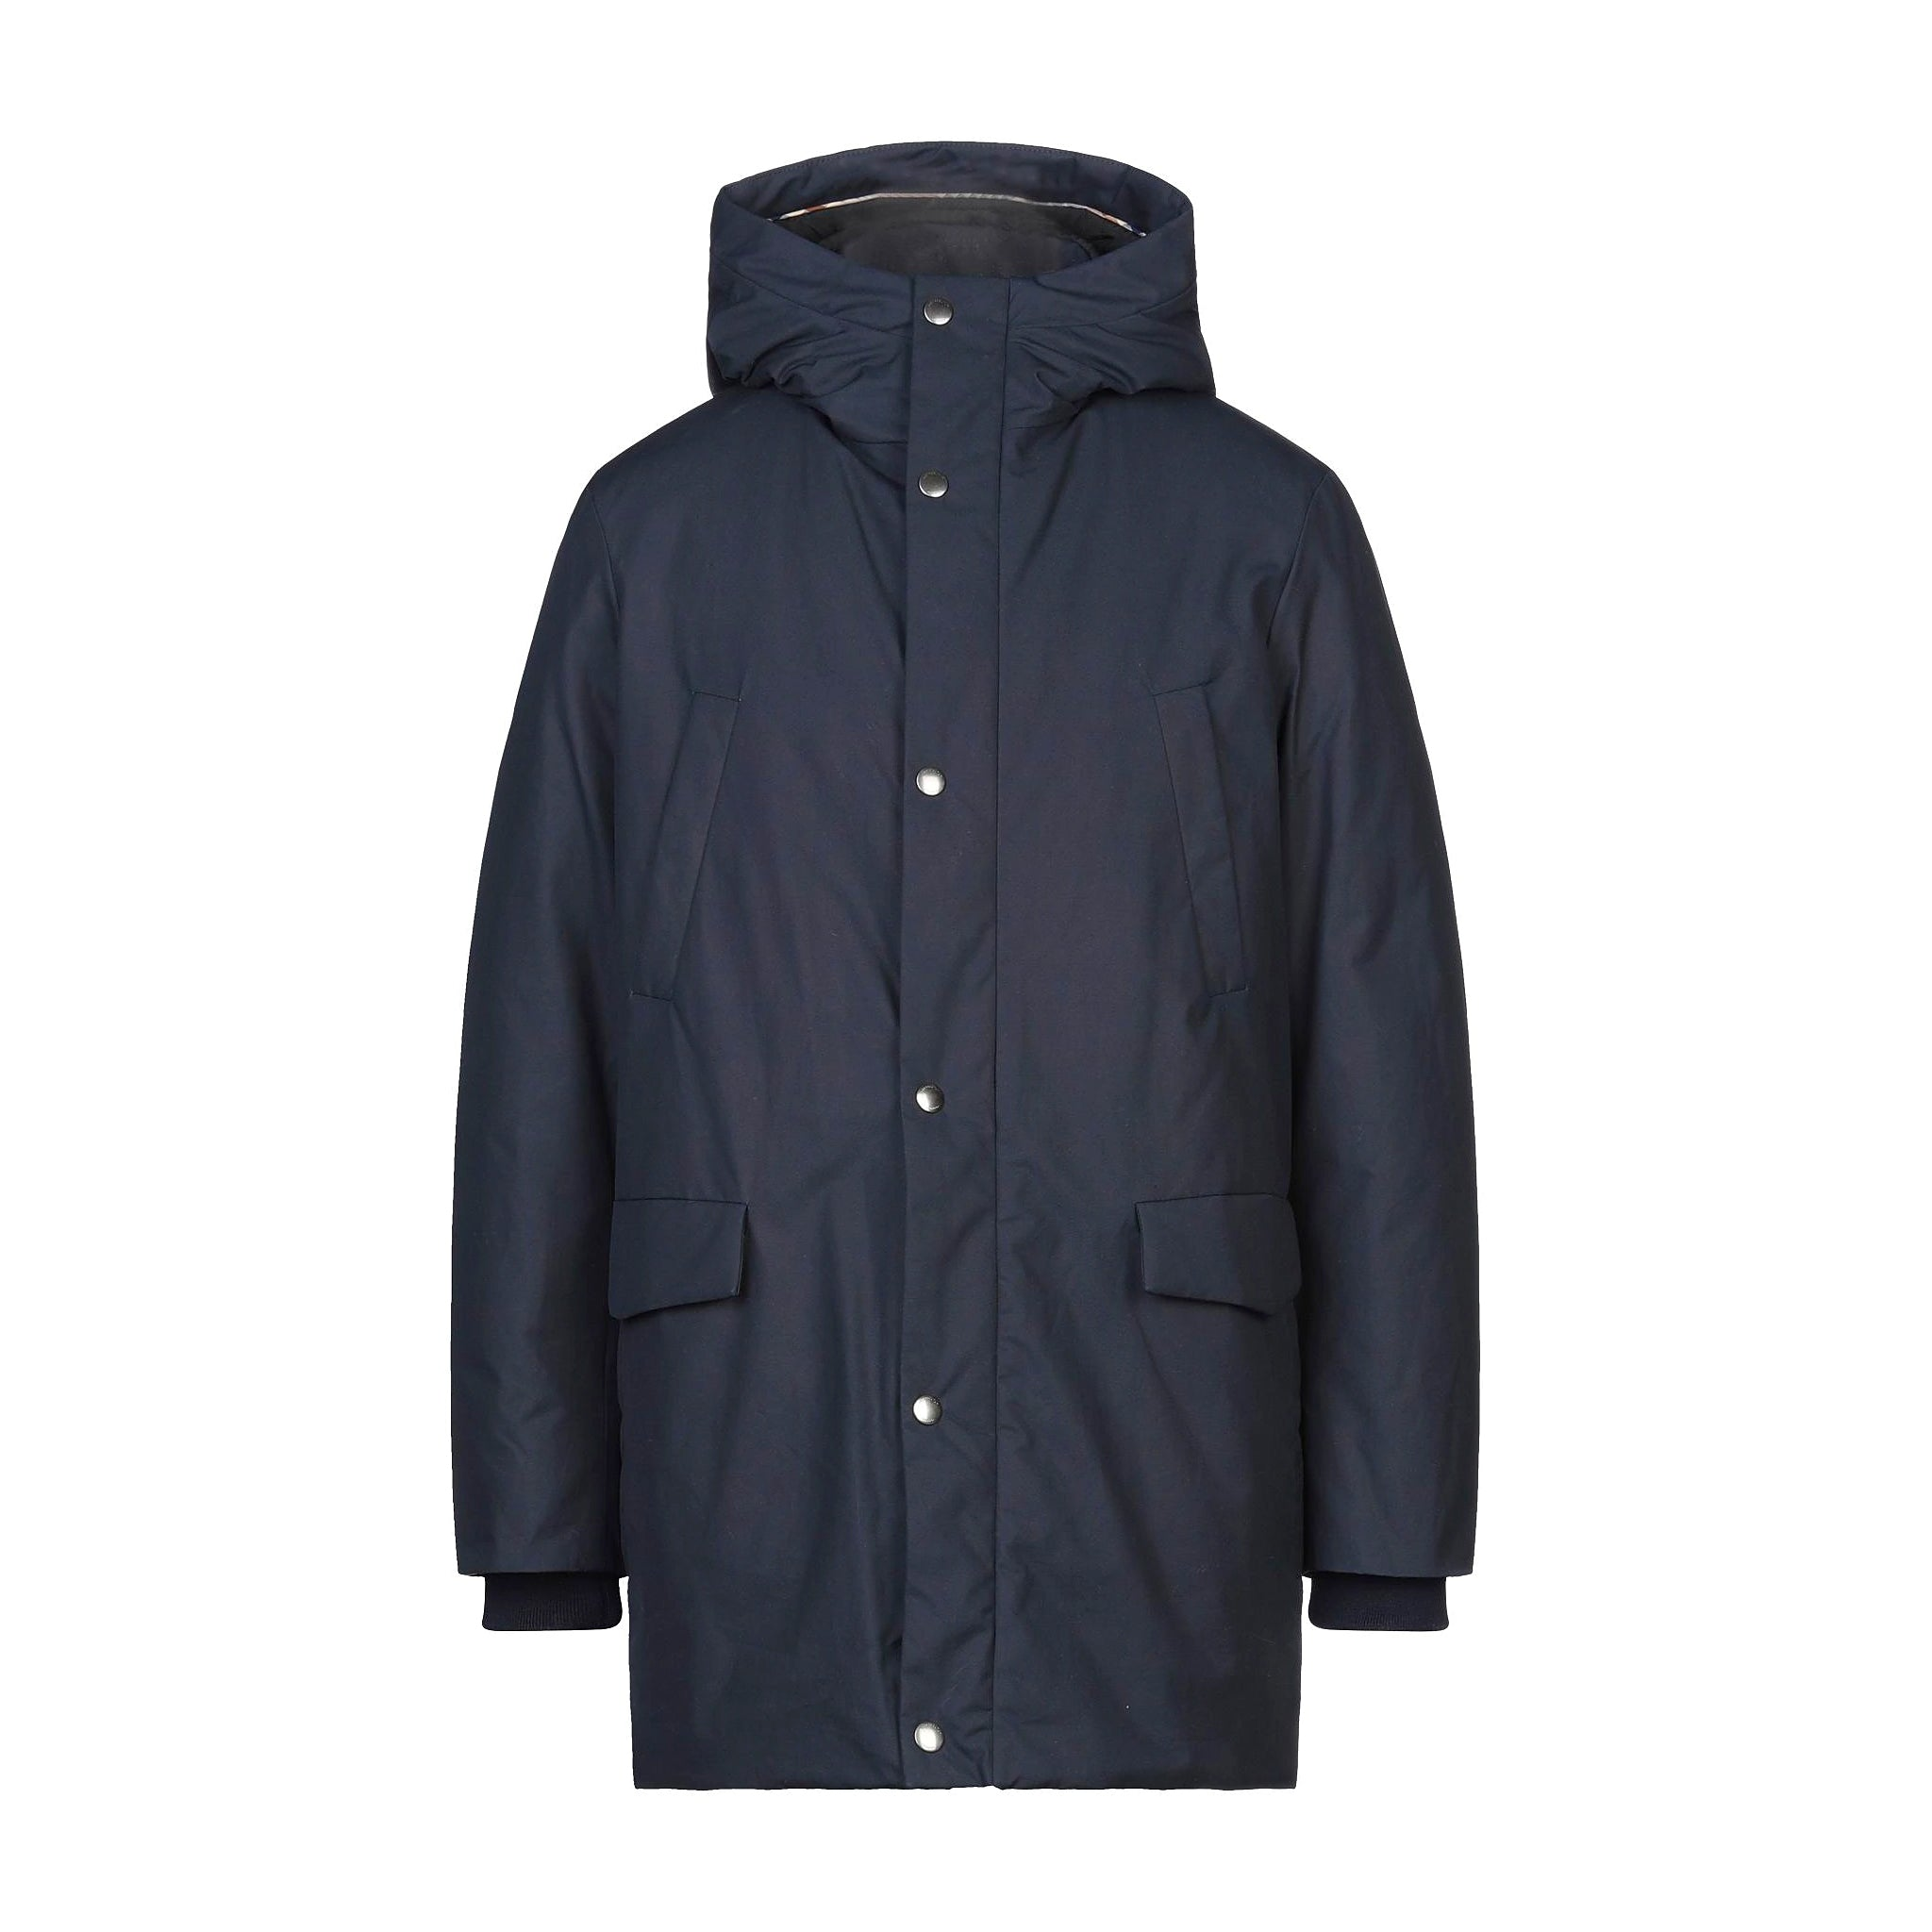 Aquascutum Padded Cotton Coat